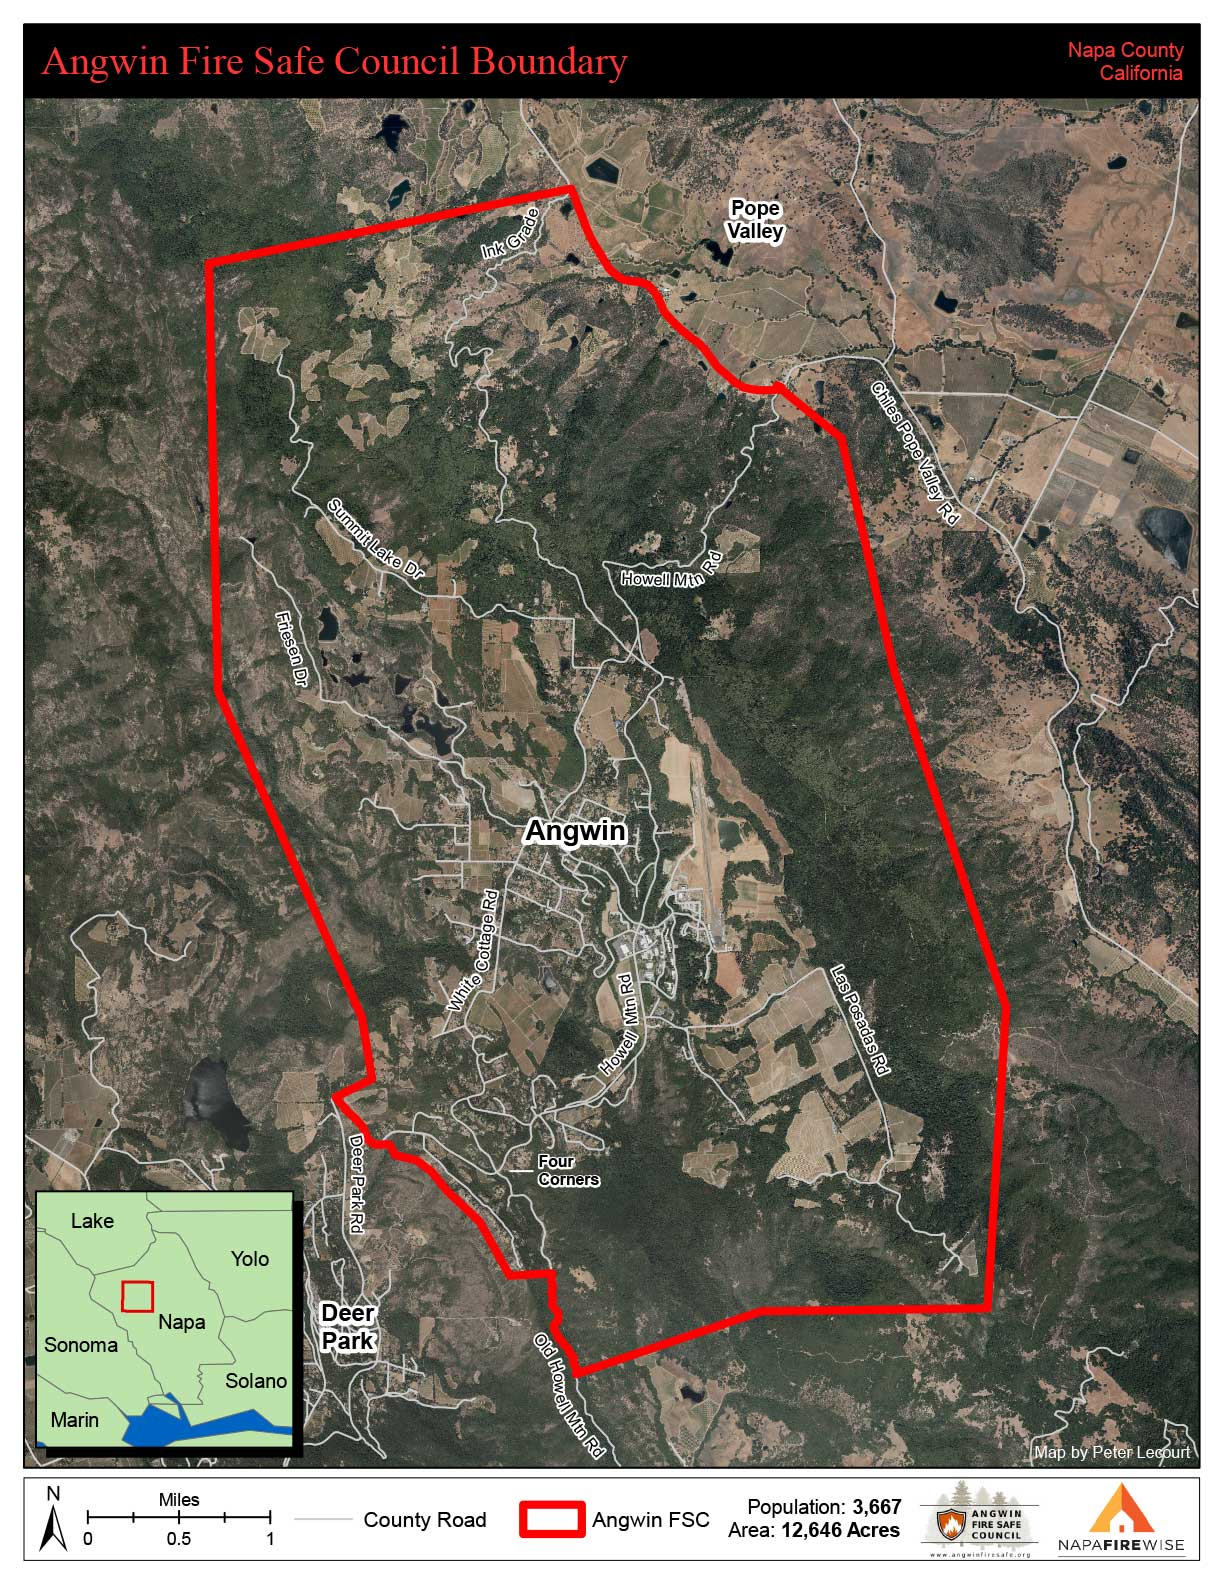 map of Angwin Fire Safe Council boundaries